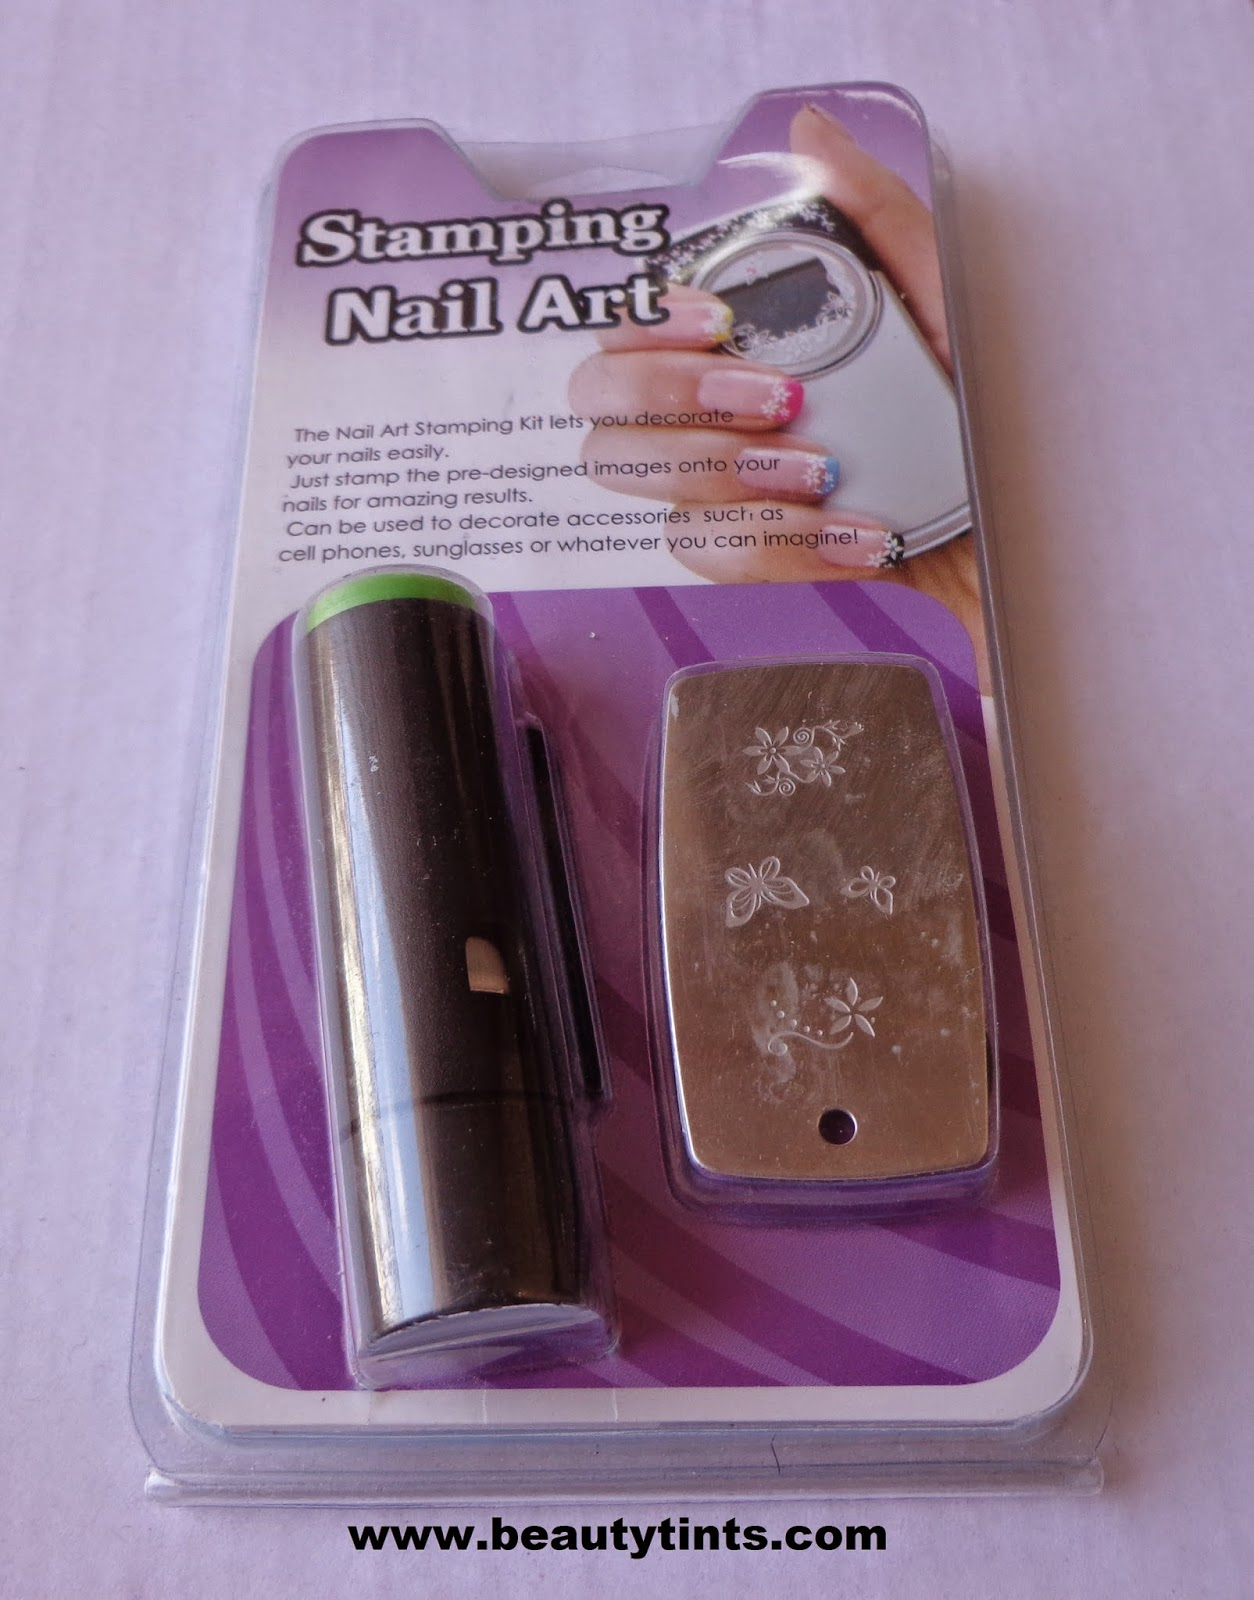 Sriz Beauty Blog Konad Stamping Nail Art Promotion Kit Review And